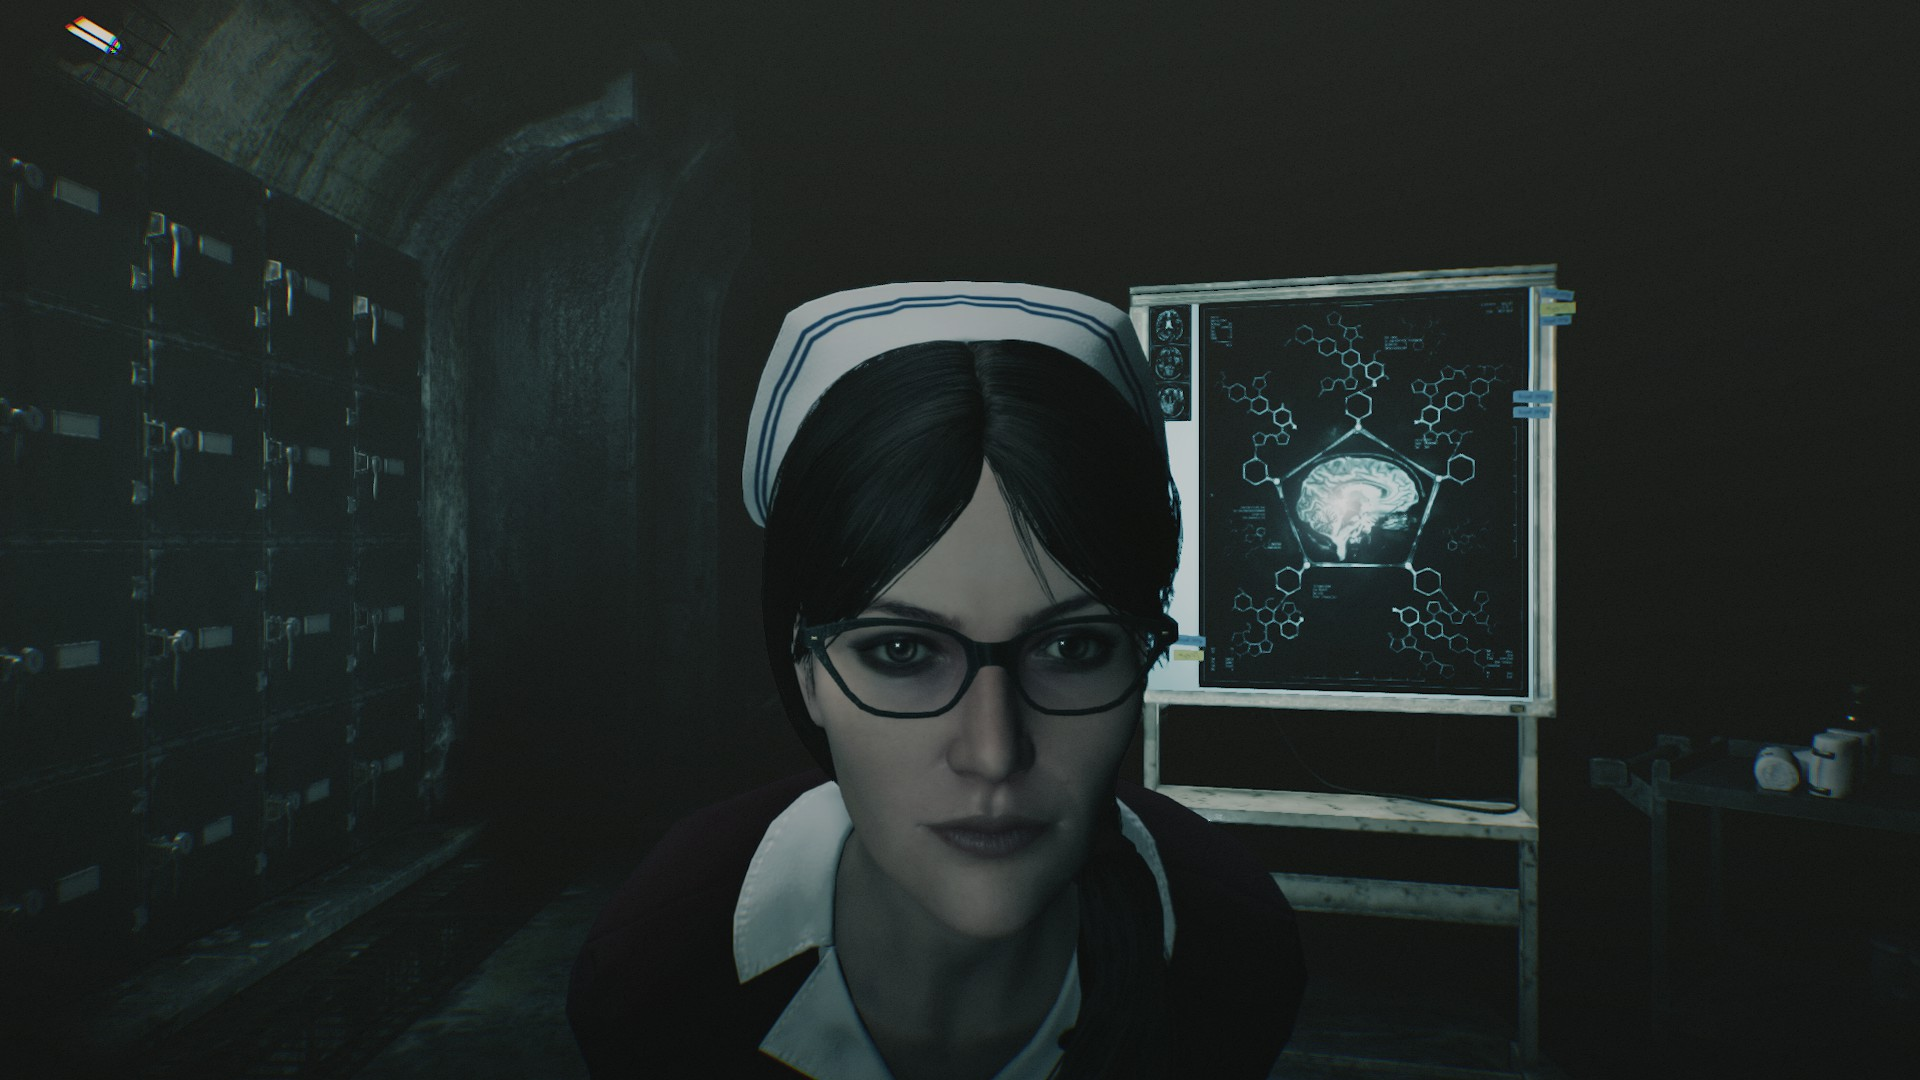 20181120221215_1.jpg - Evil Within 2, the